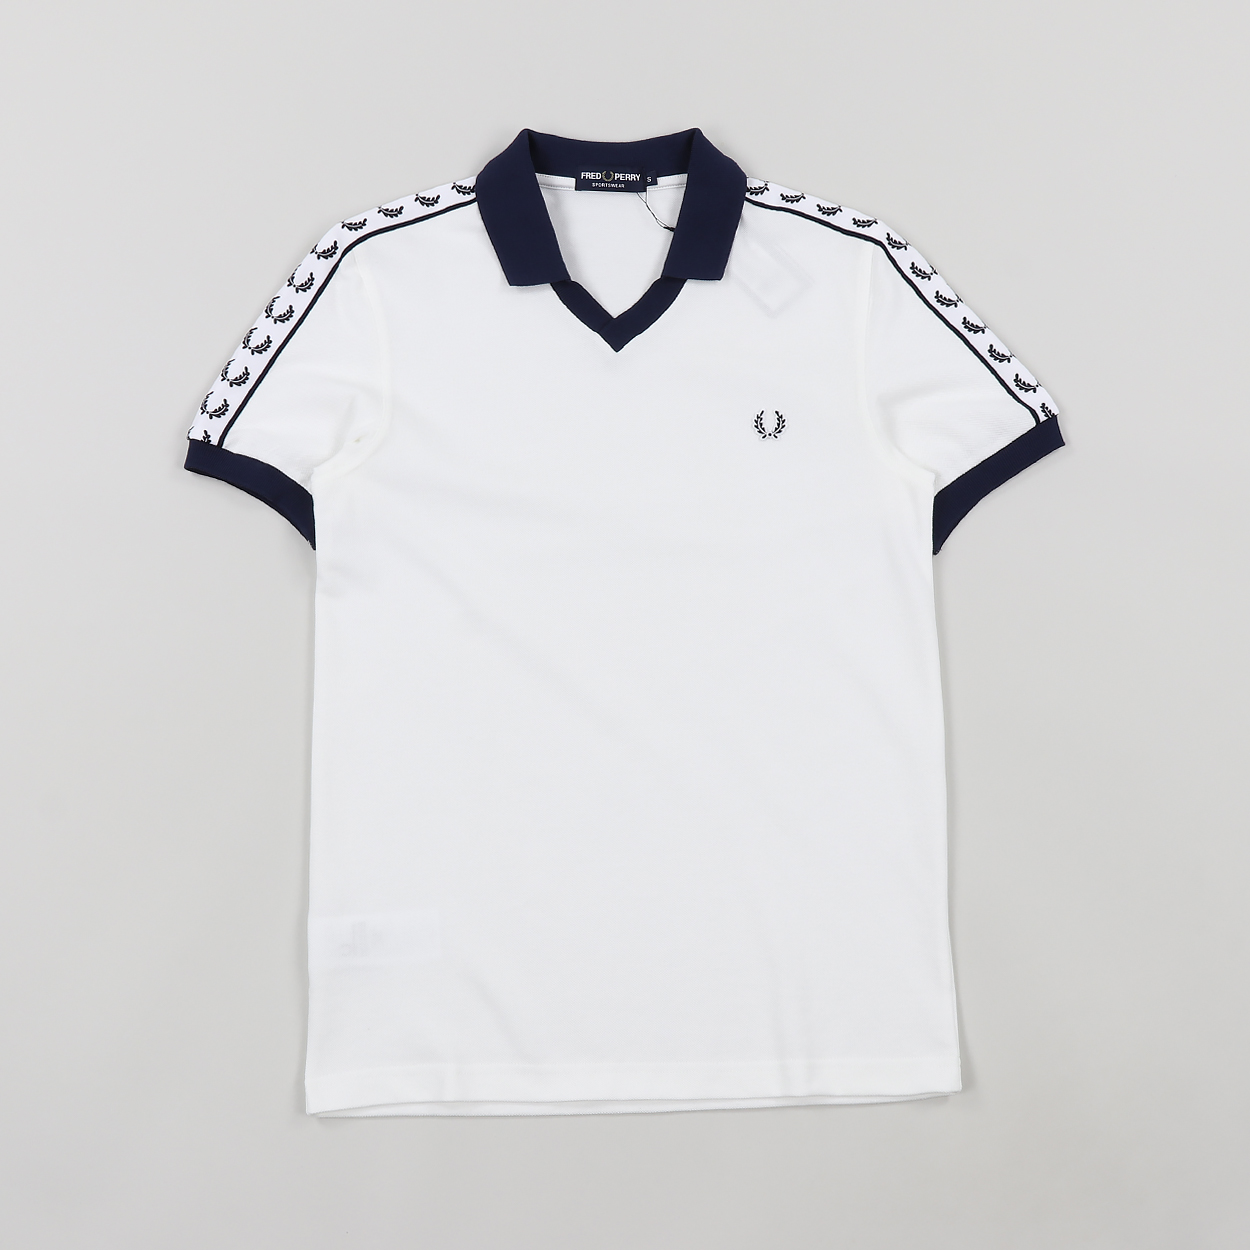 fb3243d6 Fred Perry Taped Logo Cotton Pique Polo Shirt Snow White £42.00